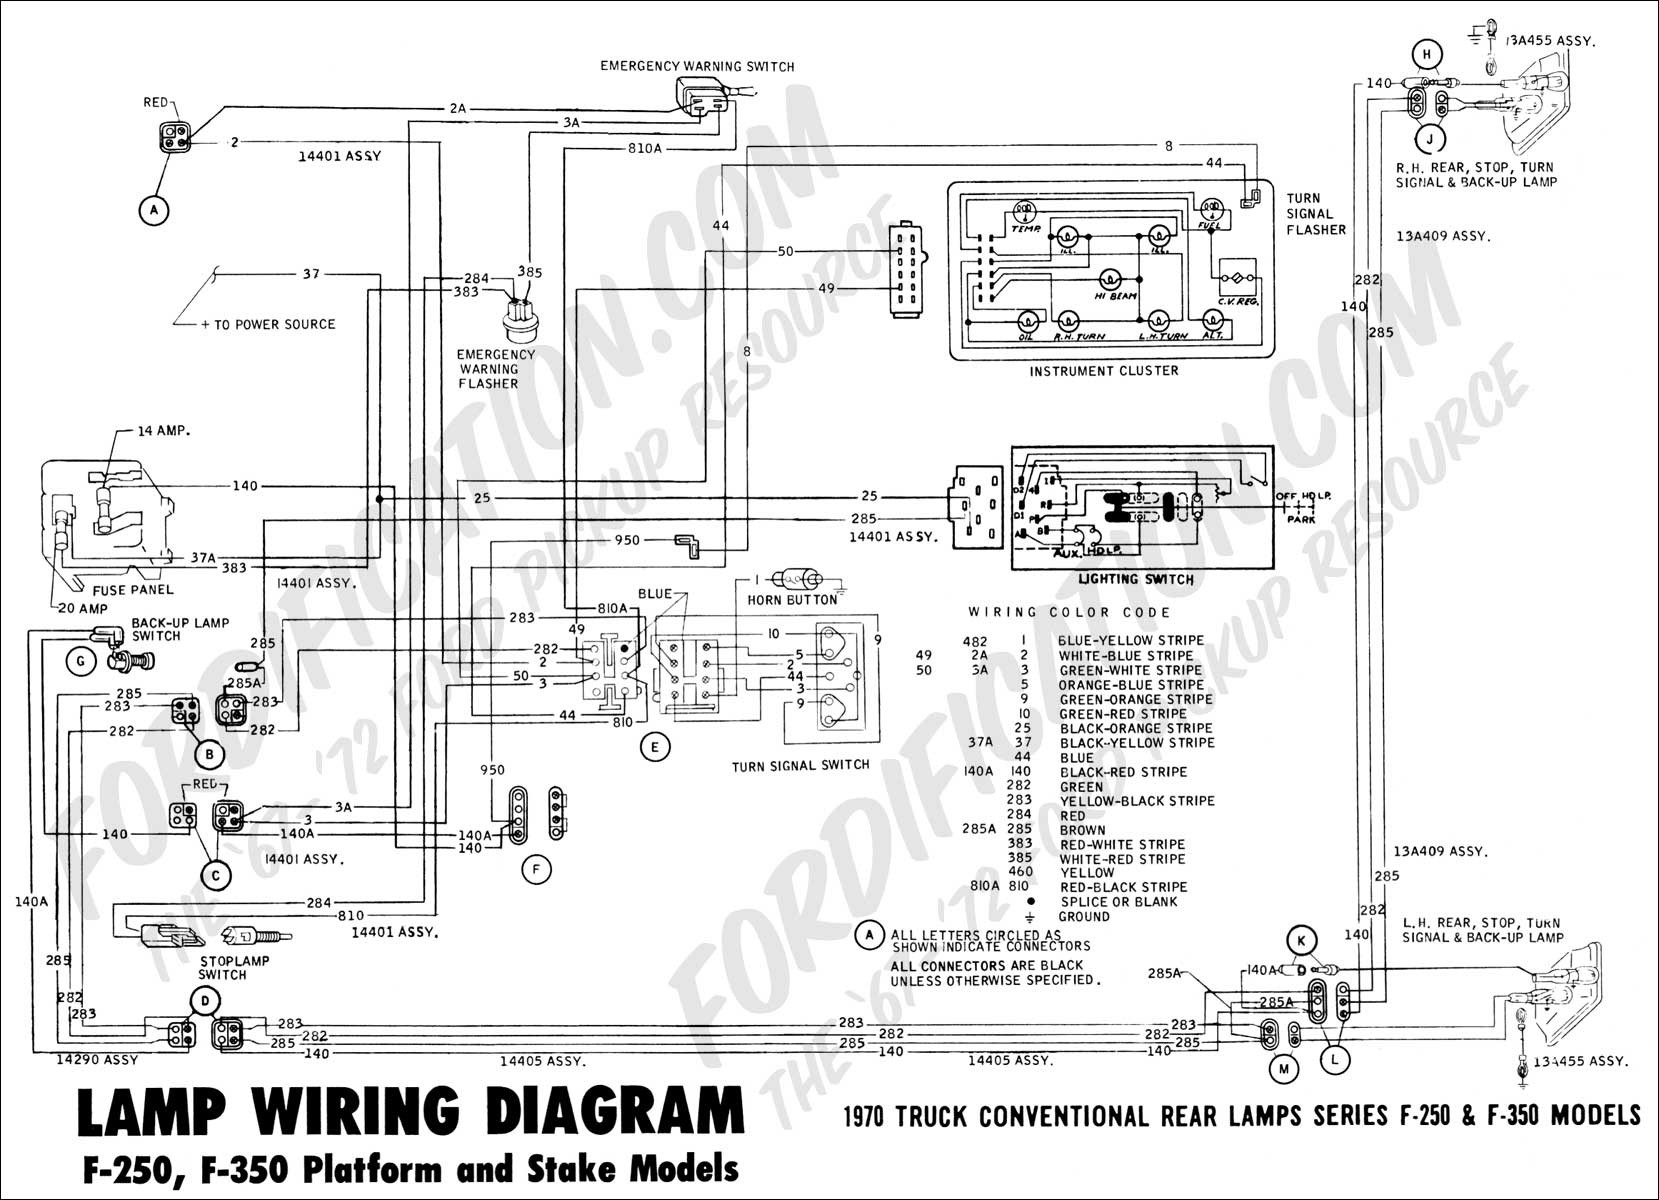 DIAGRAM] Reverse Lamp Wiring Diagram F350 FULL Version HD Quality Diagram  F350 - SCHEMATICPCBDESIGN.ANTONIOVERGARA.ITAntonio Vergara